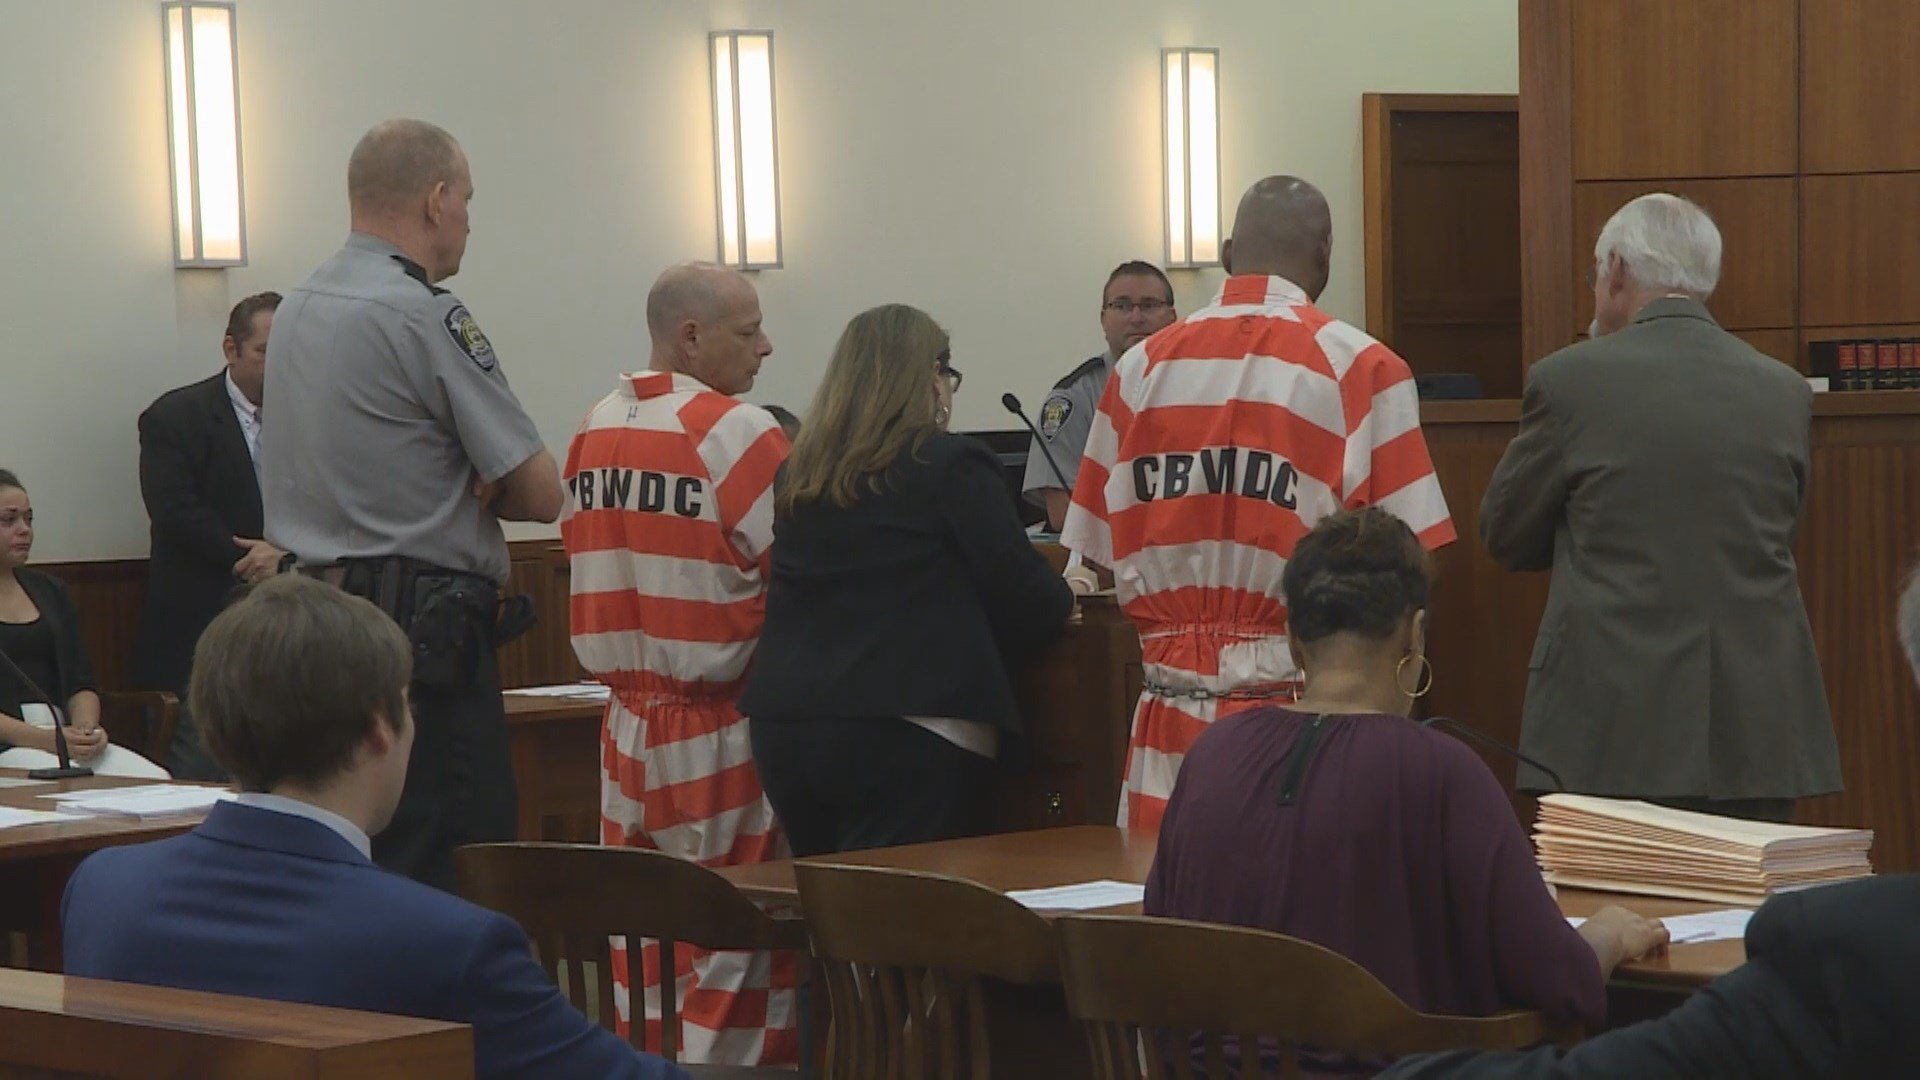 Keith Kearney and Maurice Jenkins are charged with the murder of Joaquin Figueroa. They were denied bond today. (Source: WFXG)